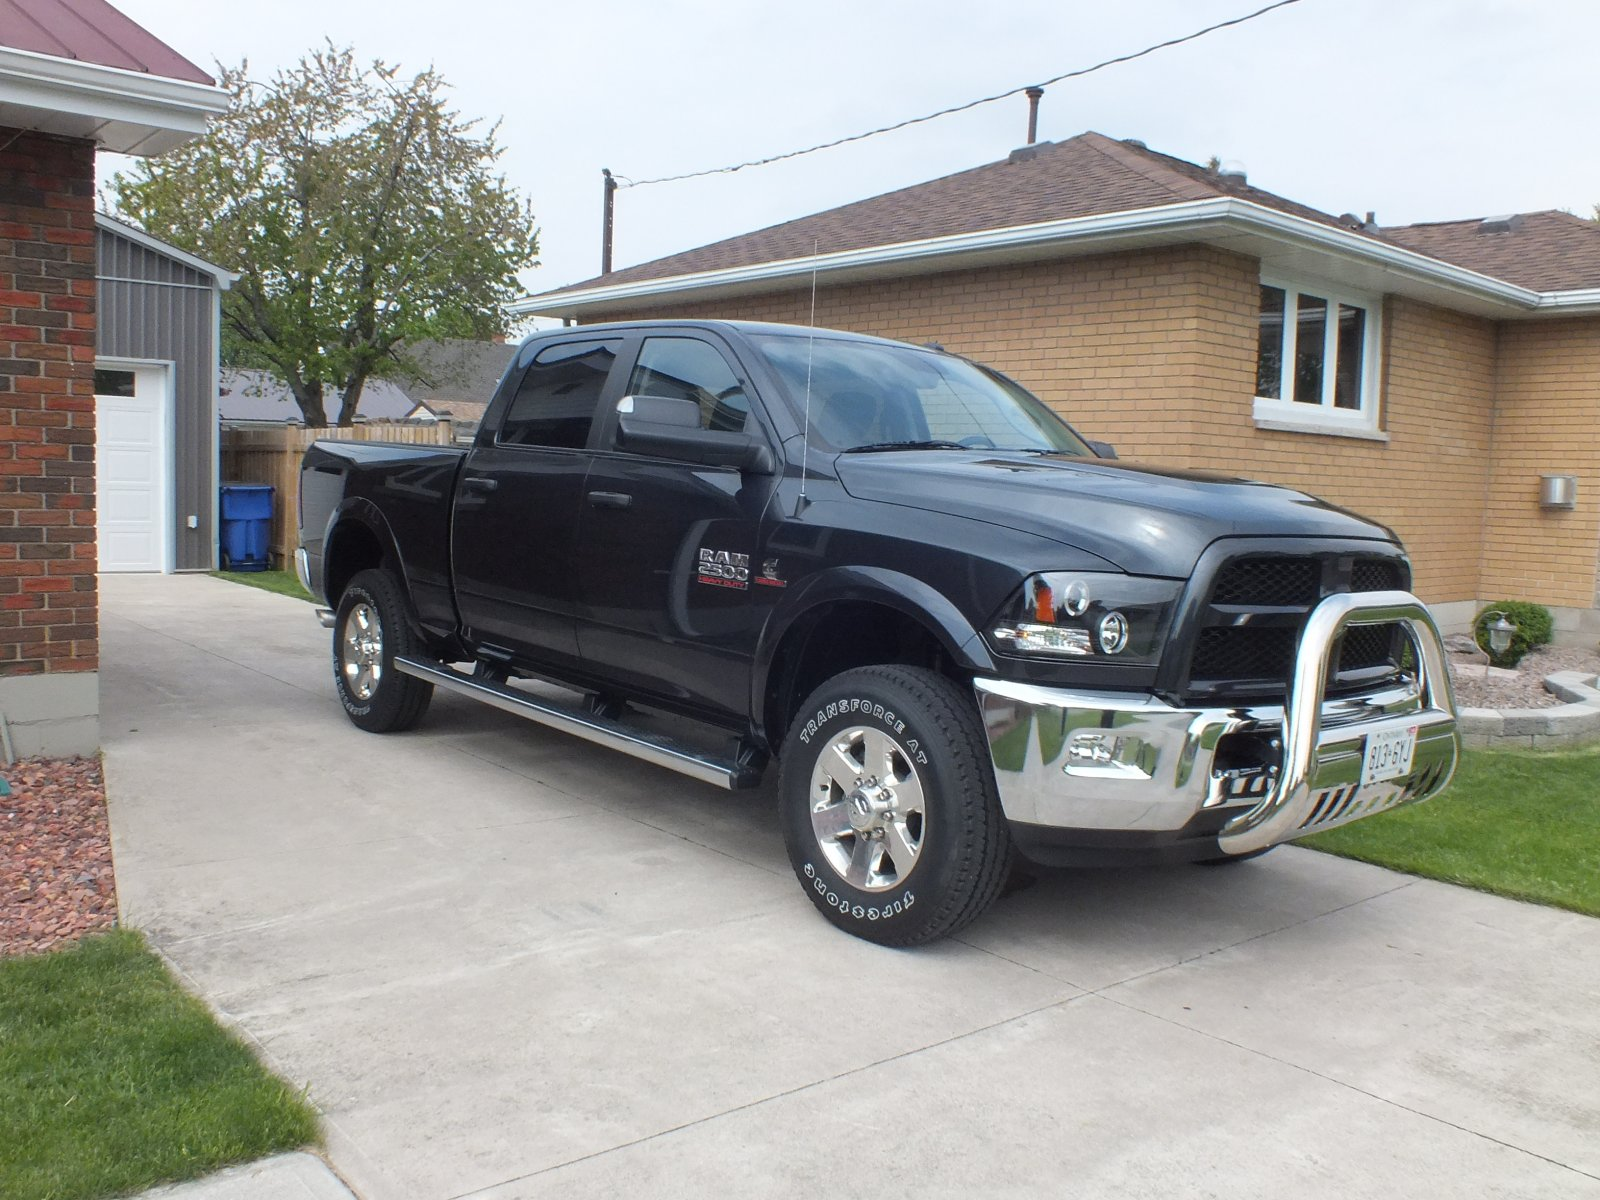 Click image for larger version  Name:johns new truck may 2015 052.jpg Views:135 Size:326.0 KB ID:112237